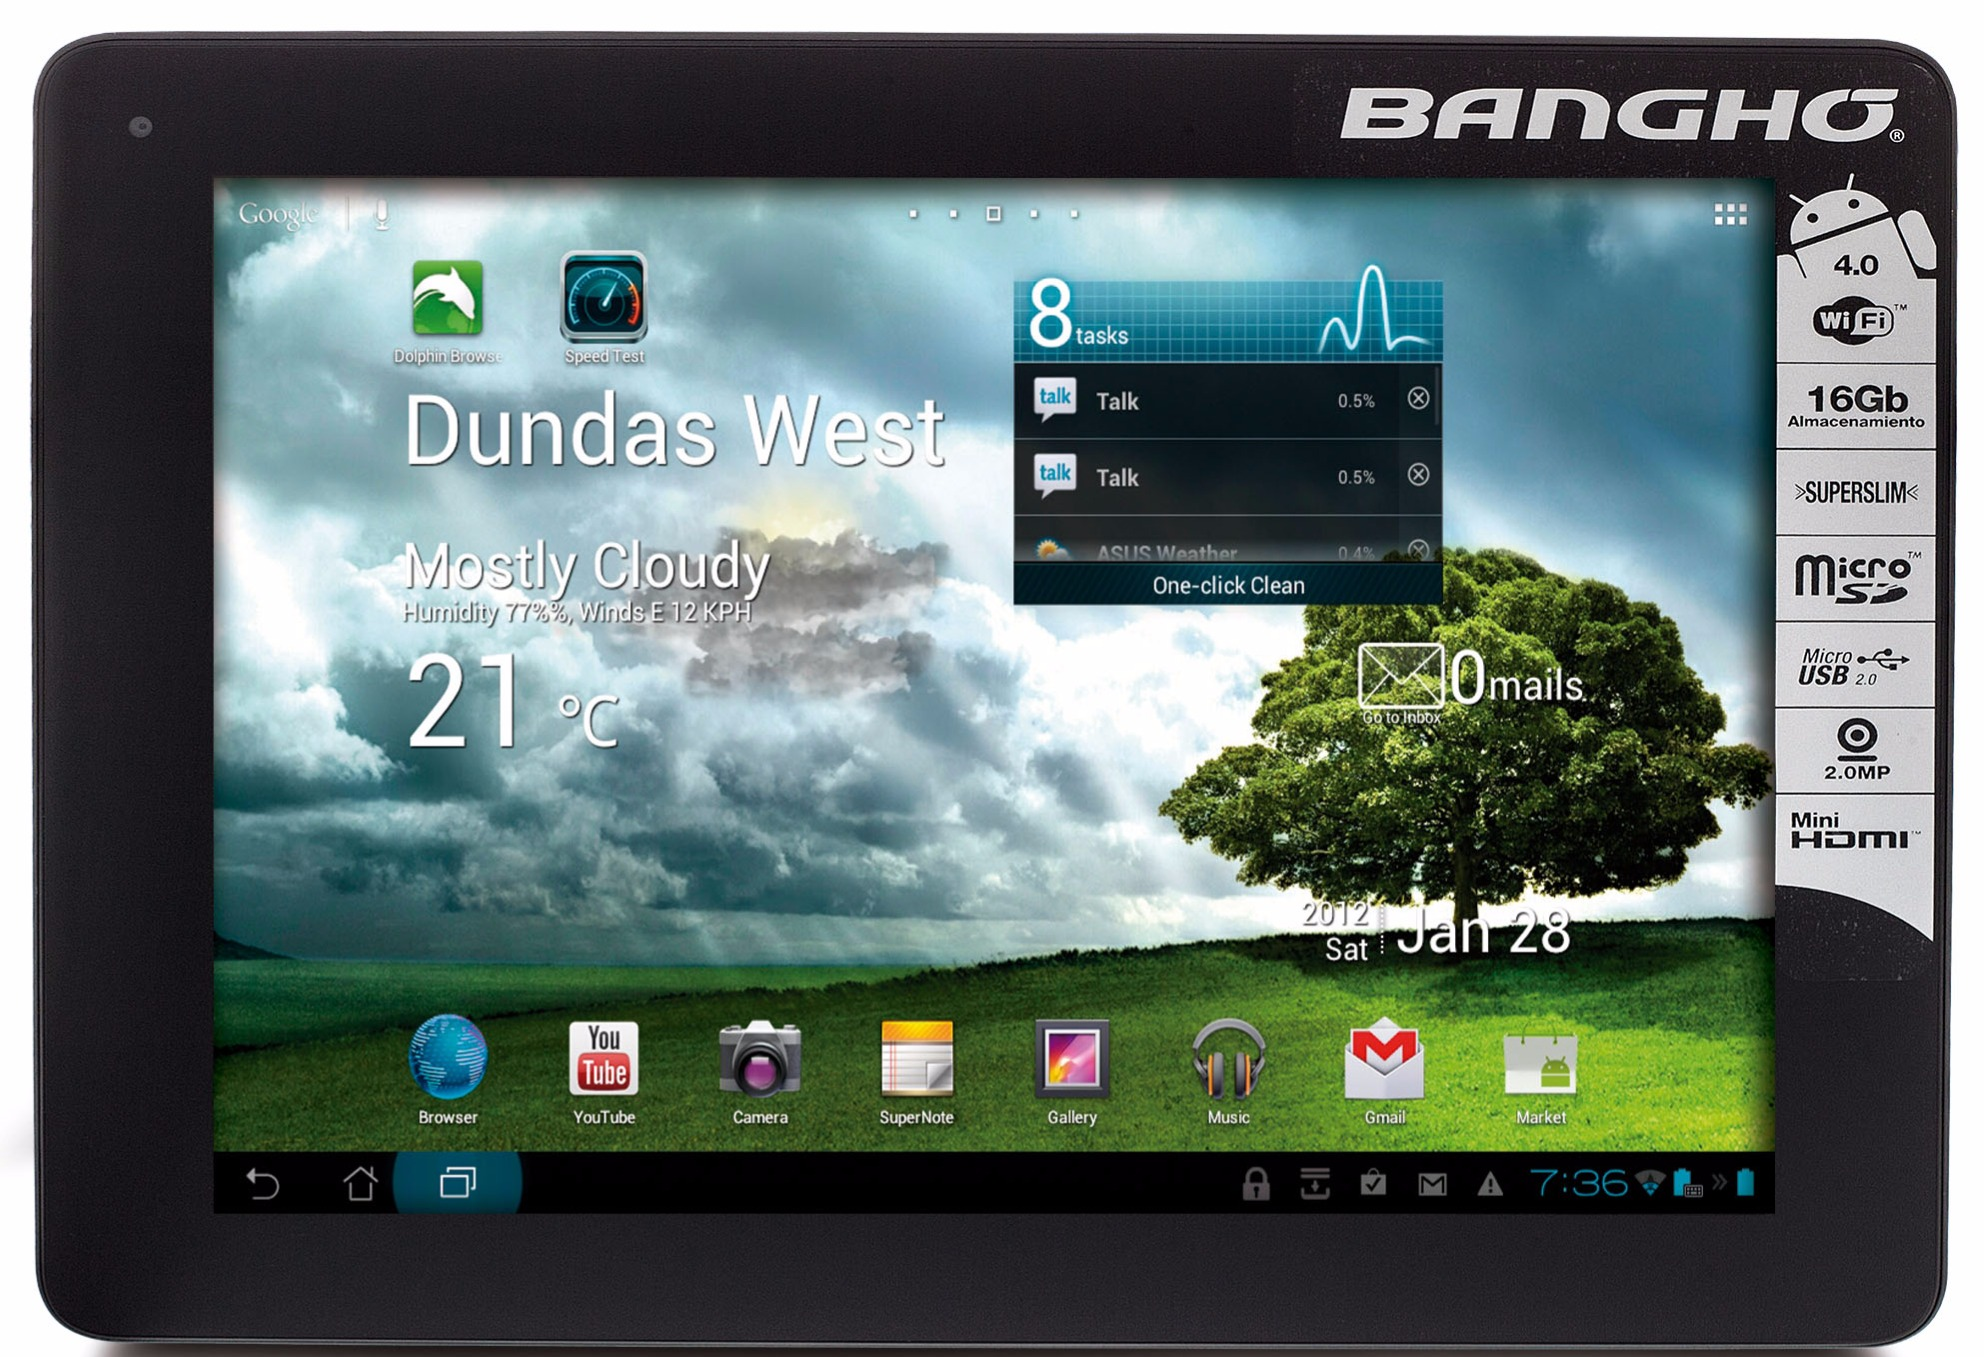 BANGHO AERO DRIVER FOR WINDOWS 8